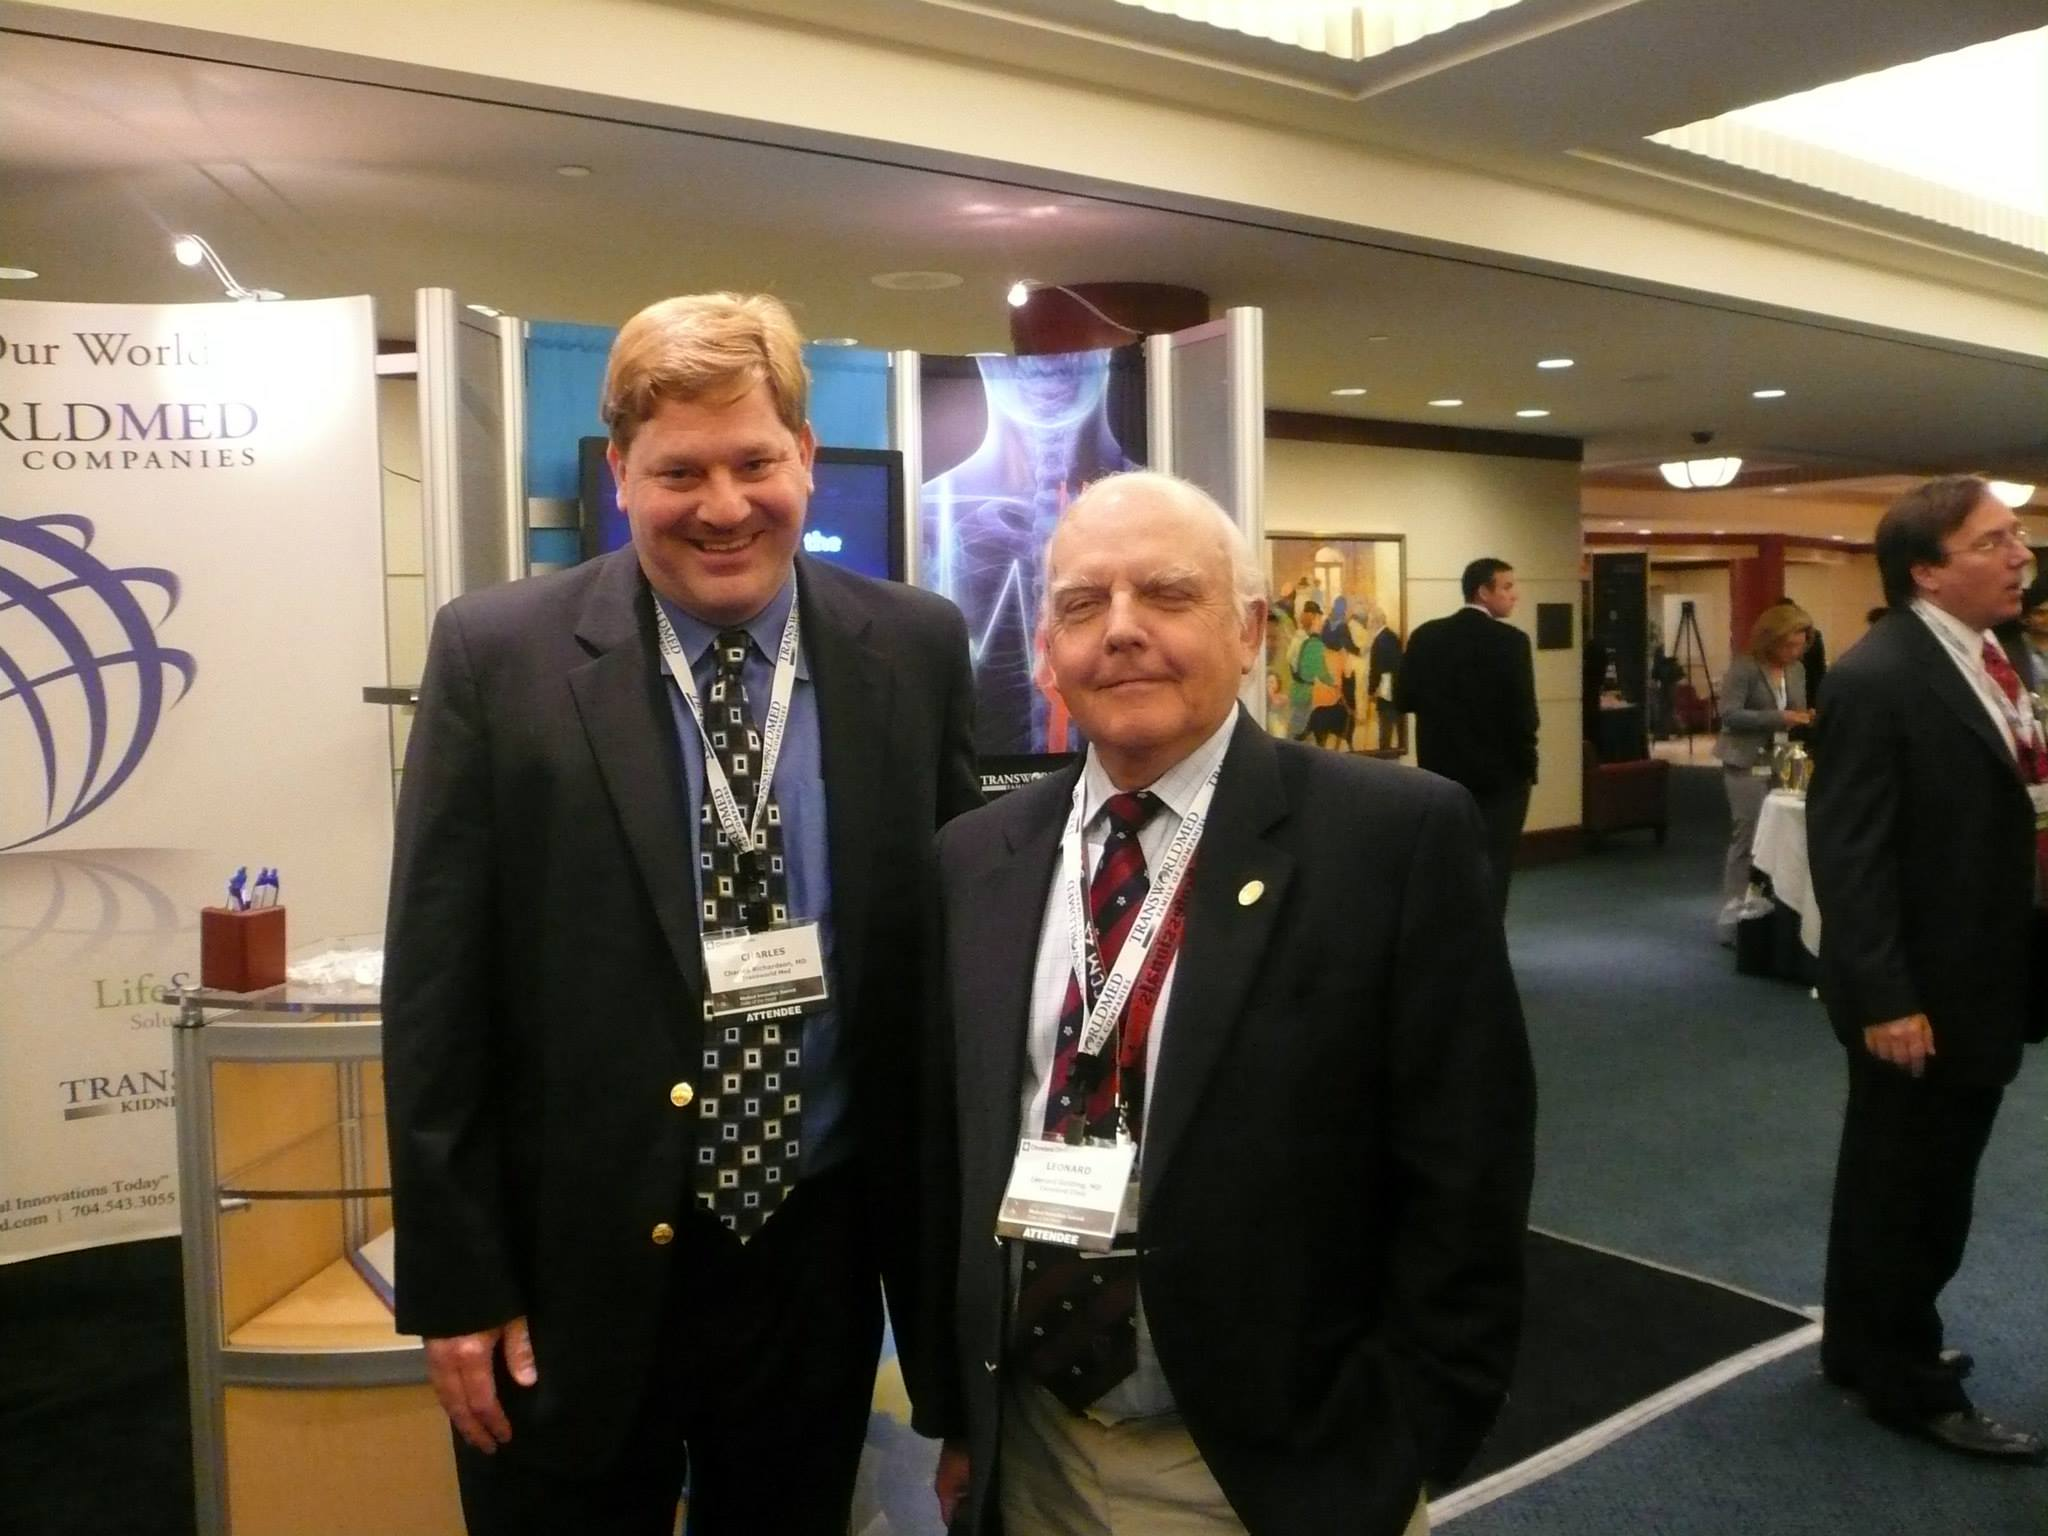 Dr. Charles Richardson and Dr. Leo Golding of both TransWorld Med and Cleveland Clinic